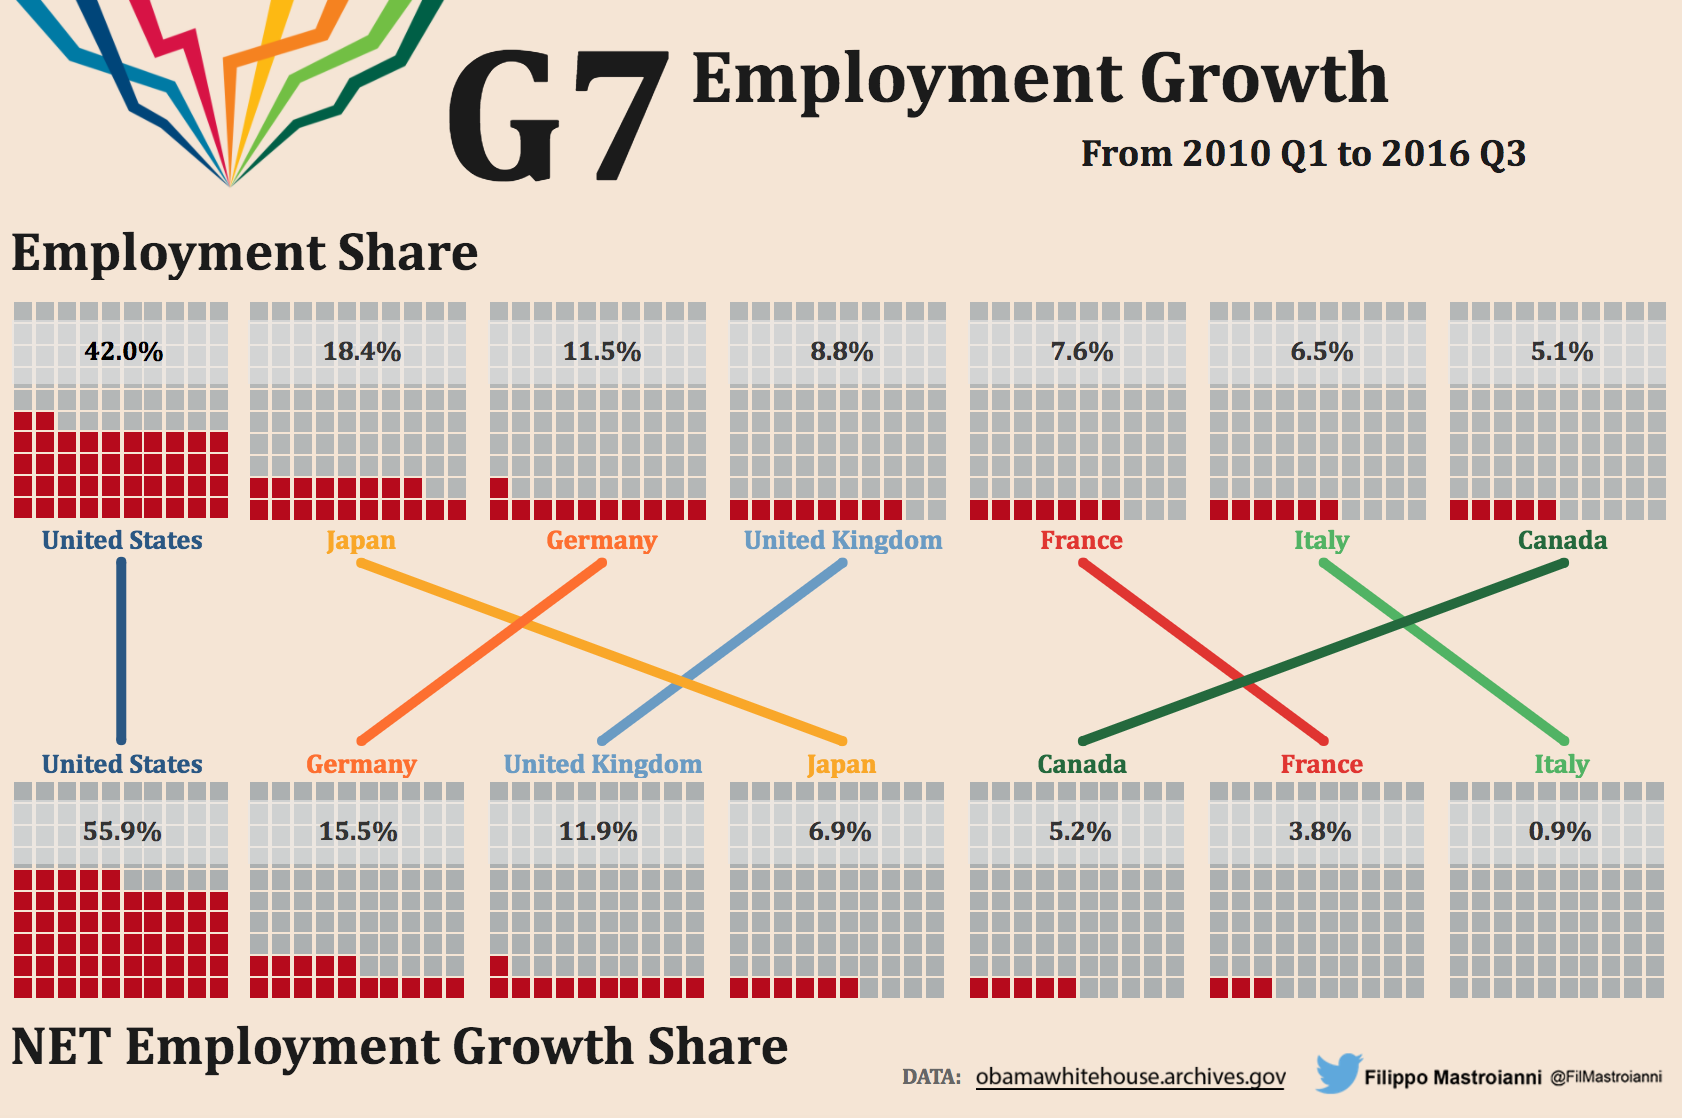 Week 5 – Employment Growth in G-7 Countries